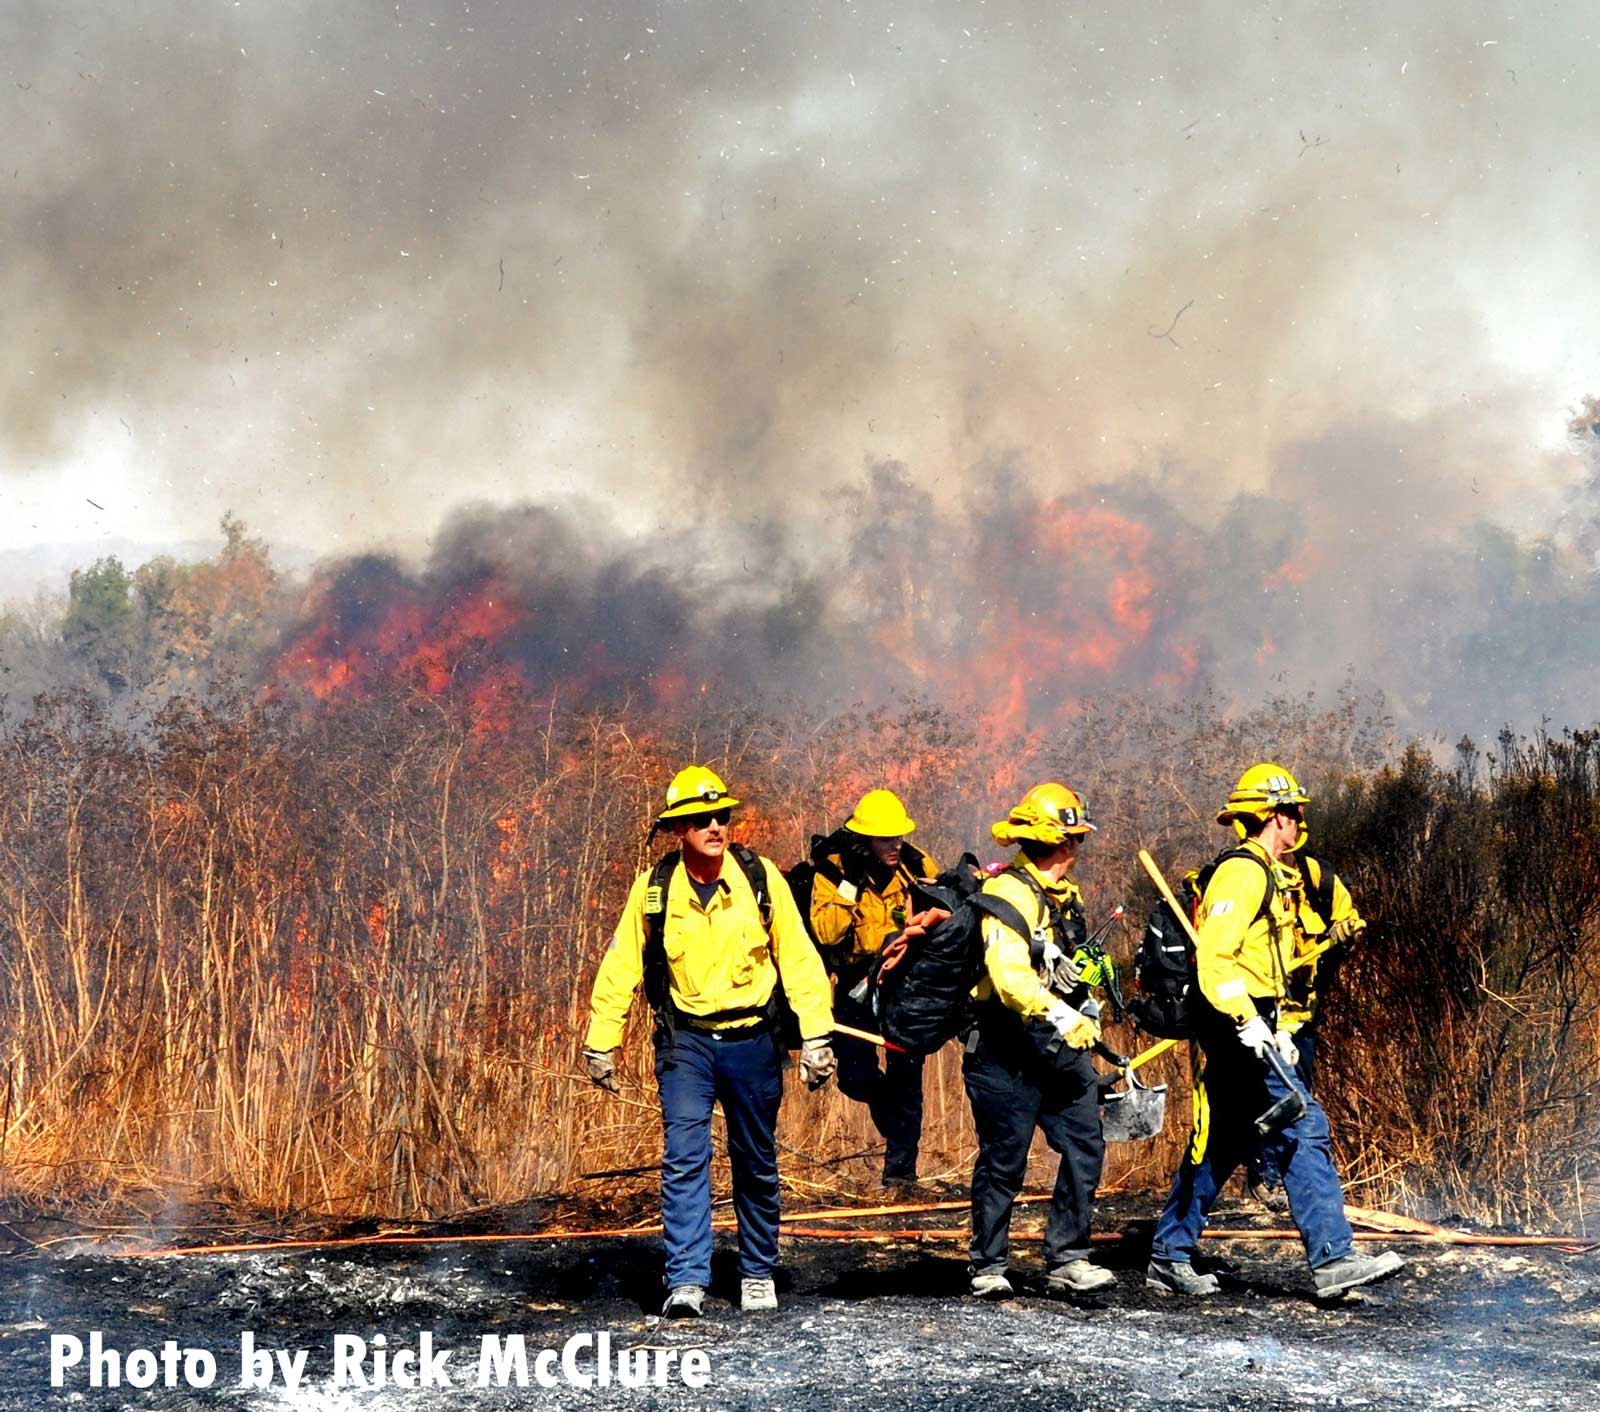 LAFD firefighters at vegetation fire